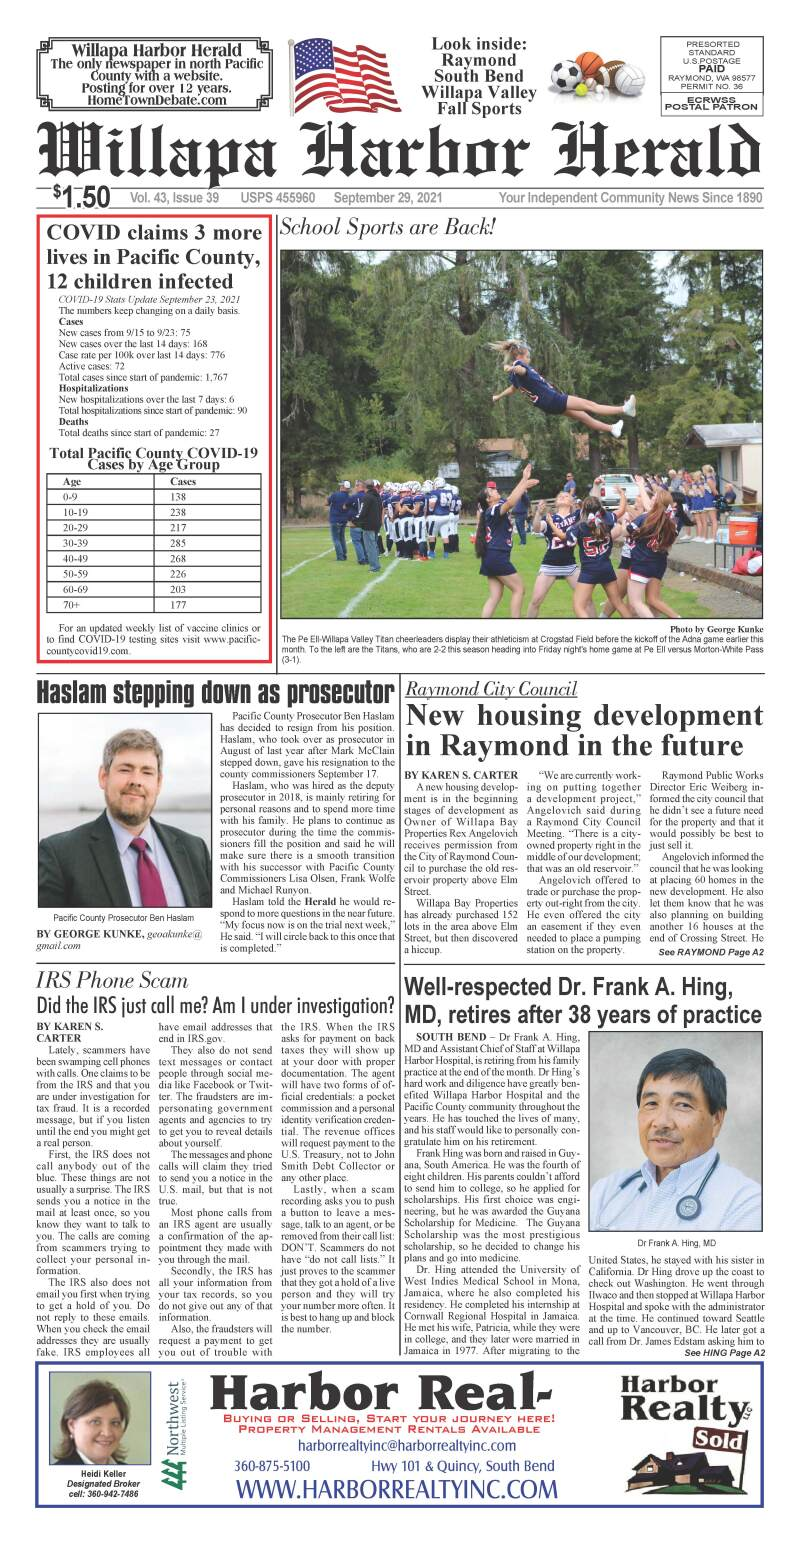 September 29, 2021 Willapa Harbor Herald and Pacific County Press